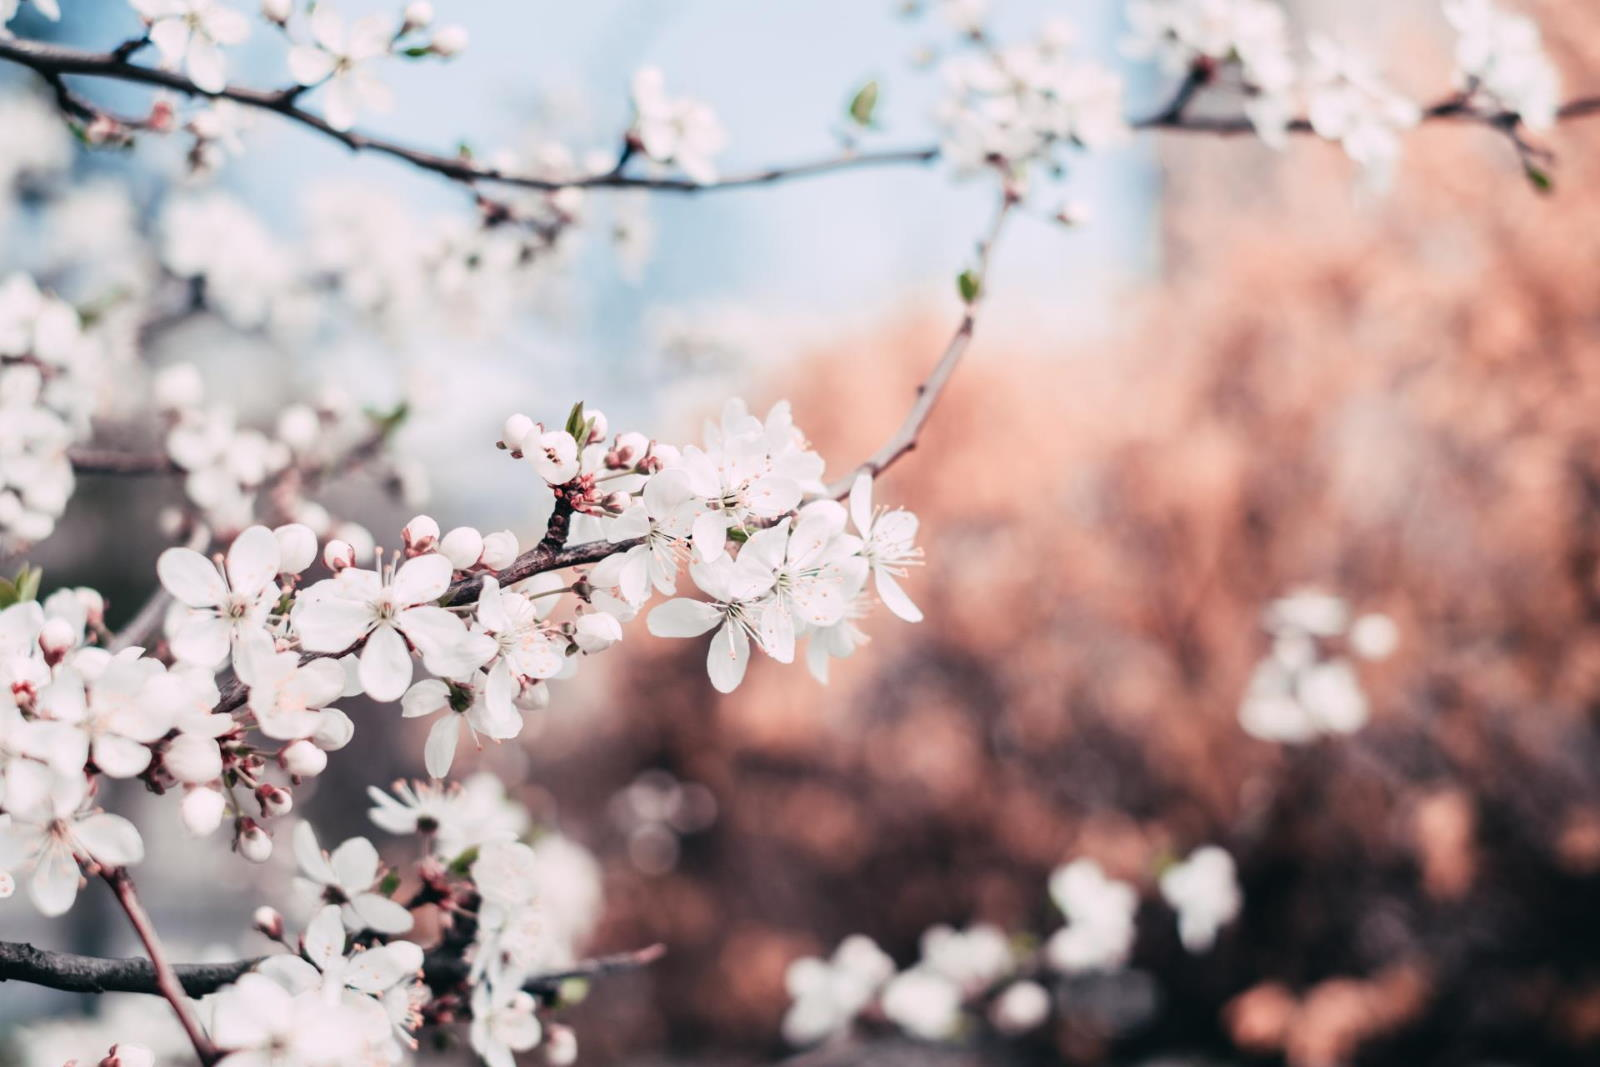 Blossoming tree branches